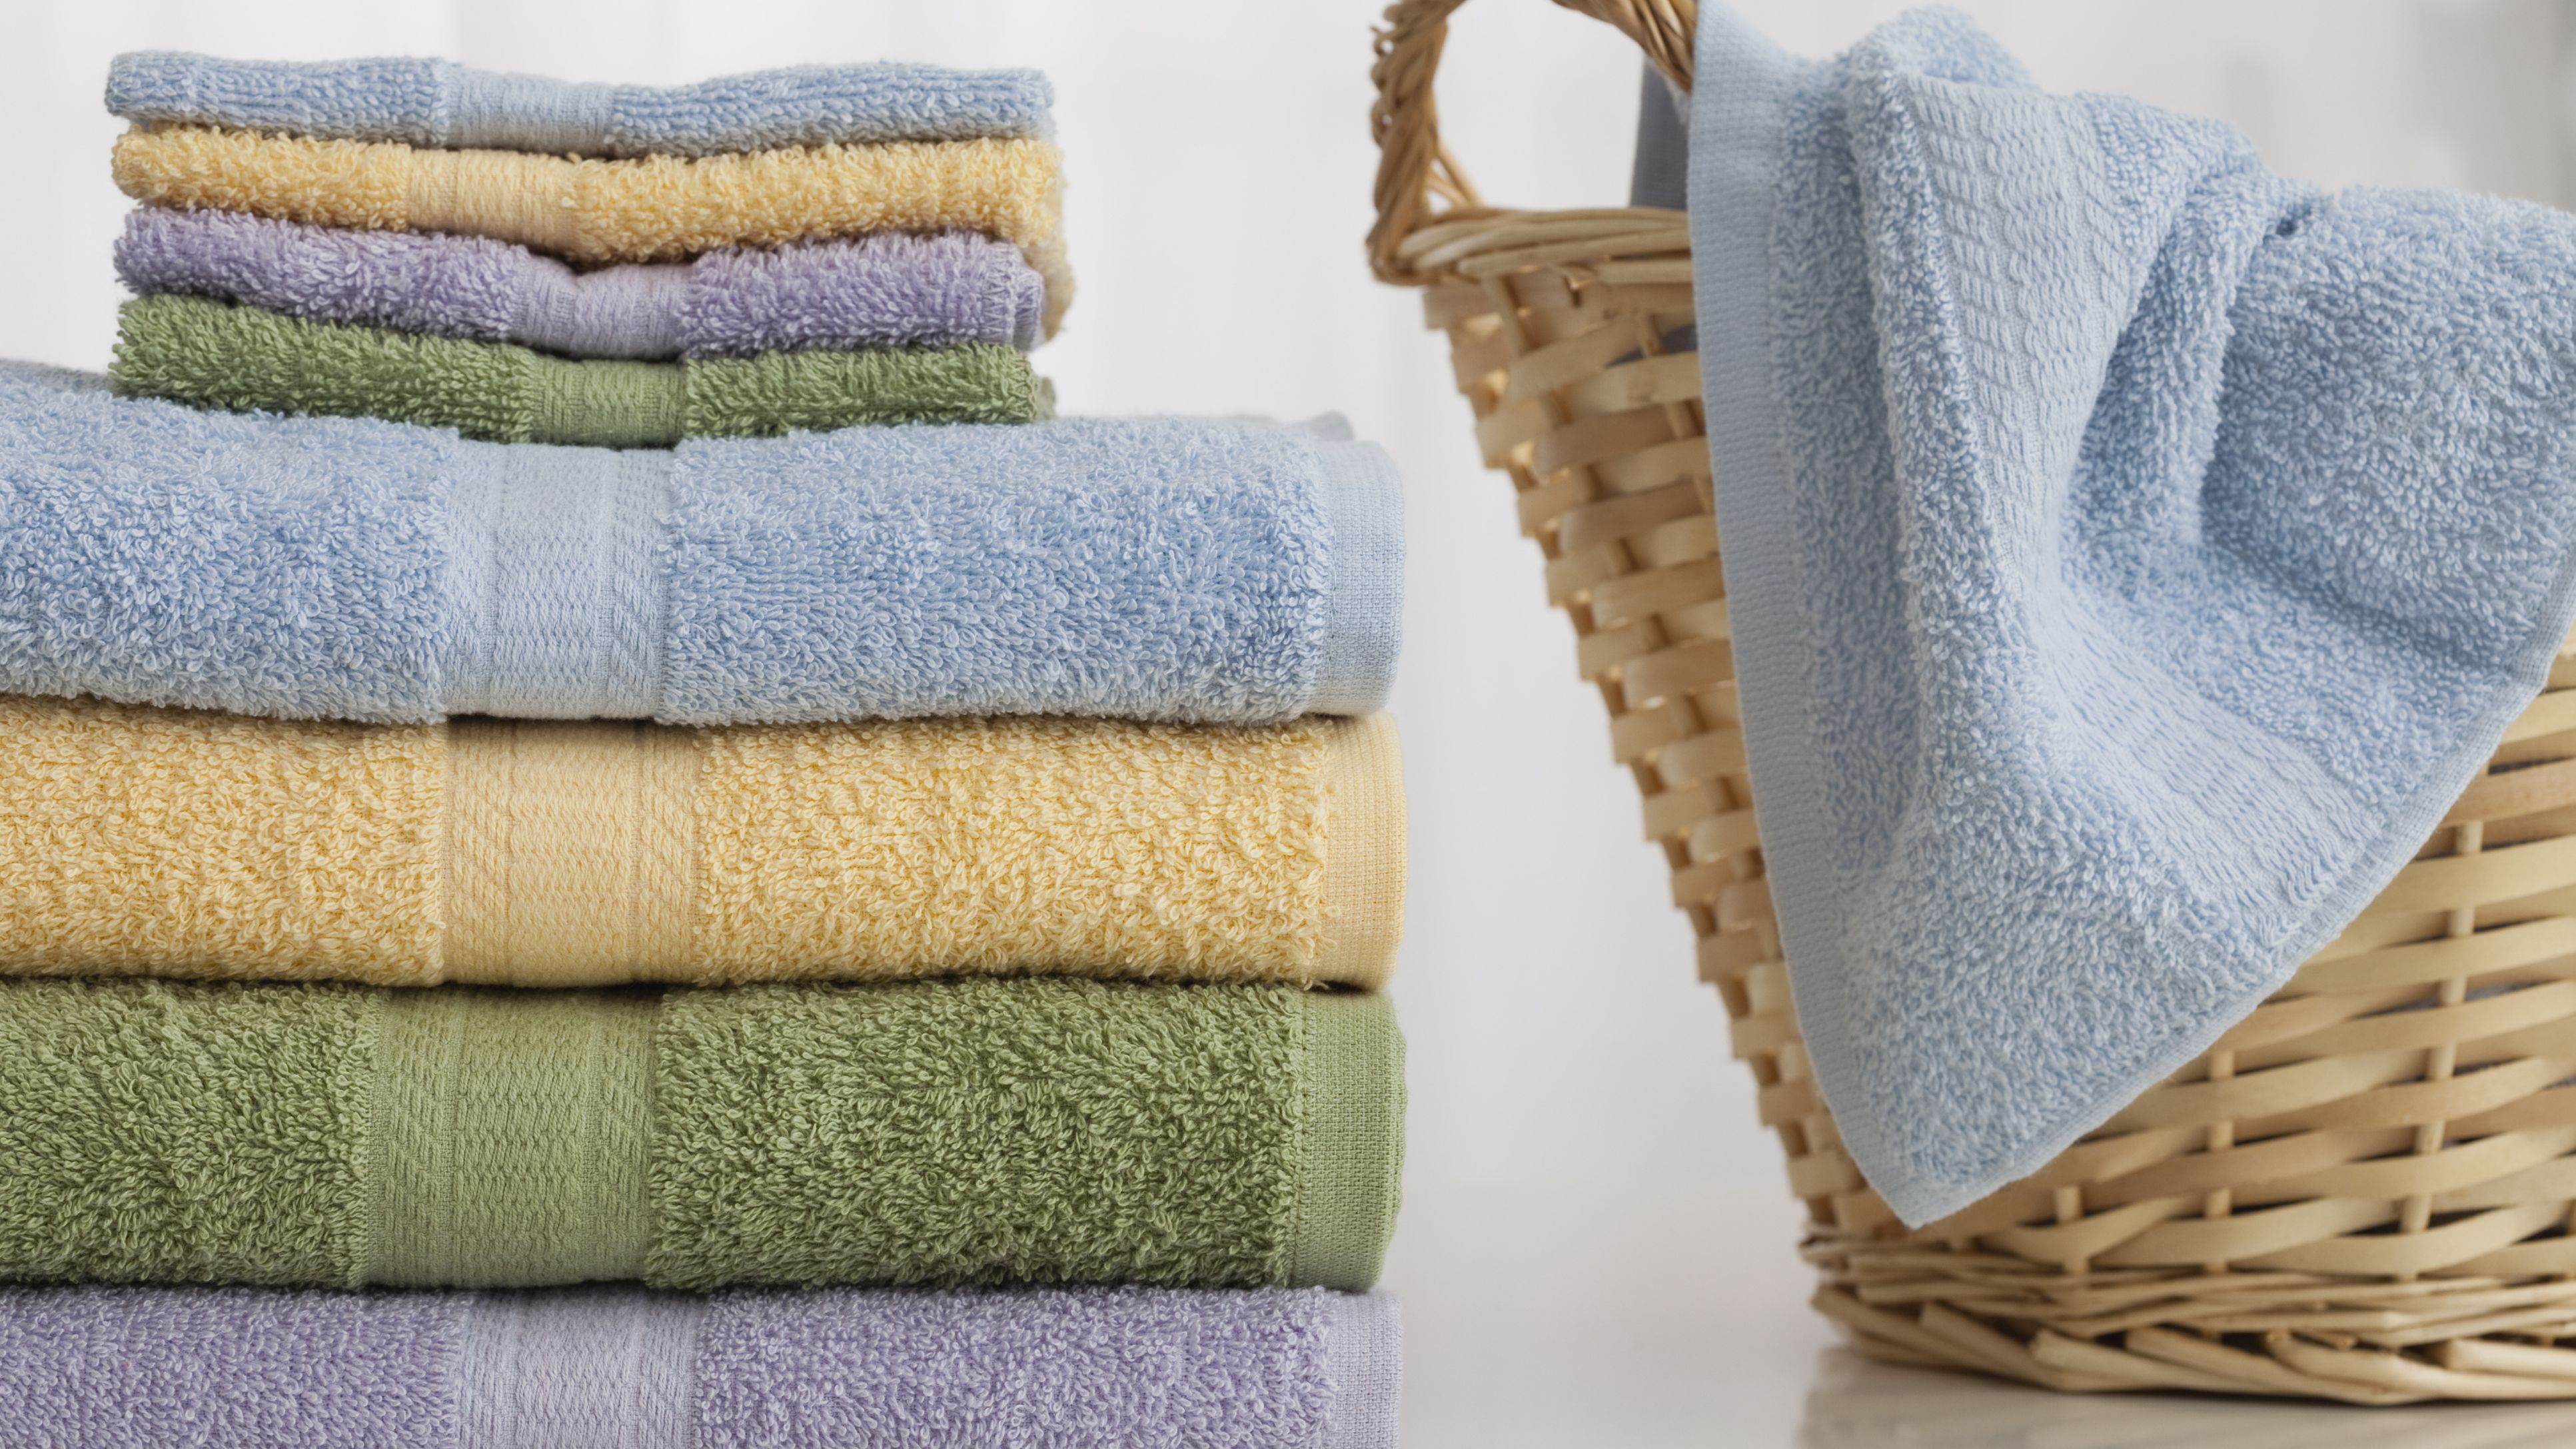 Bath Towels Really Clean After Washing